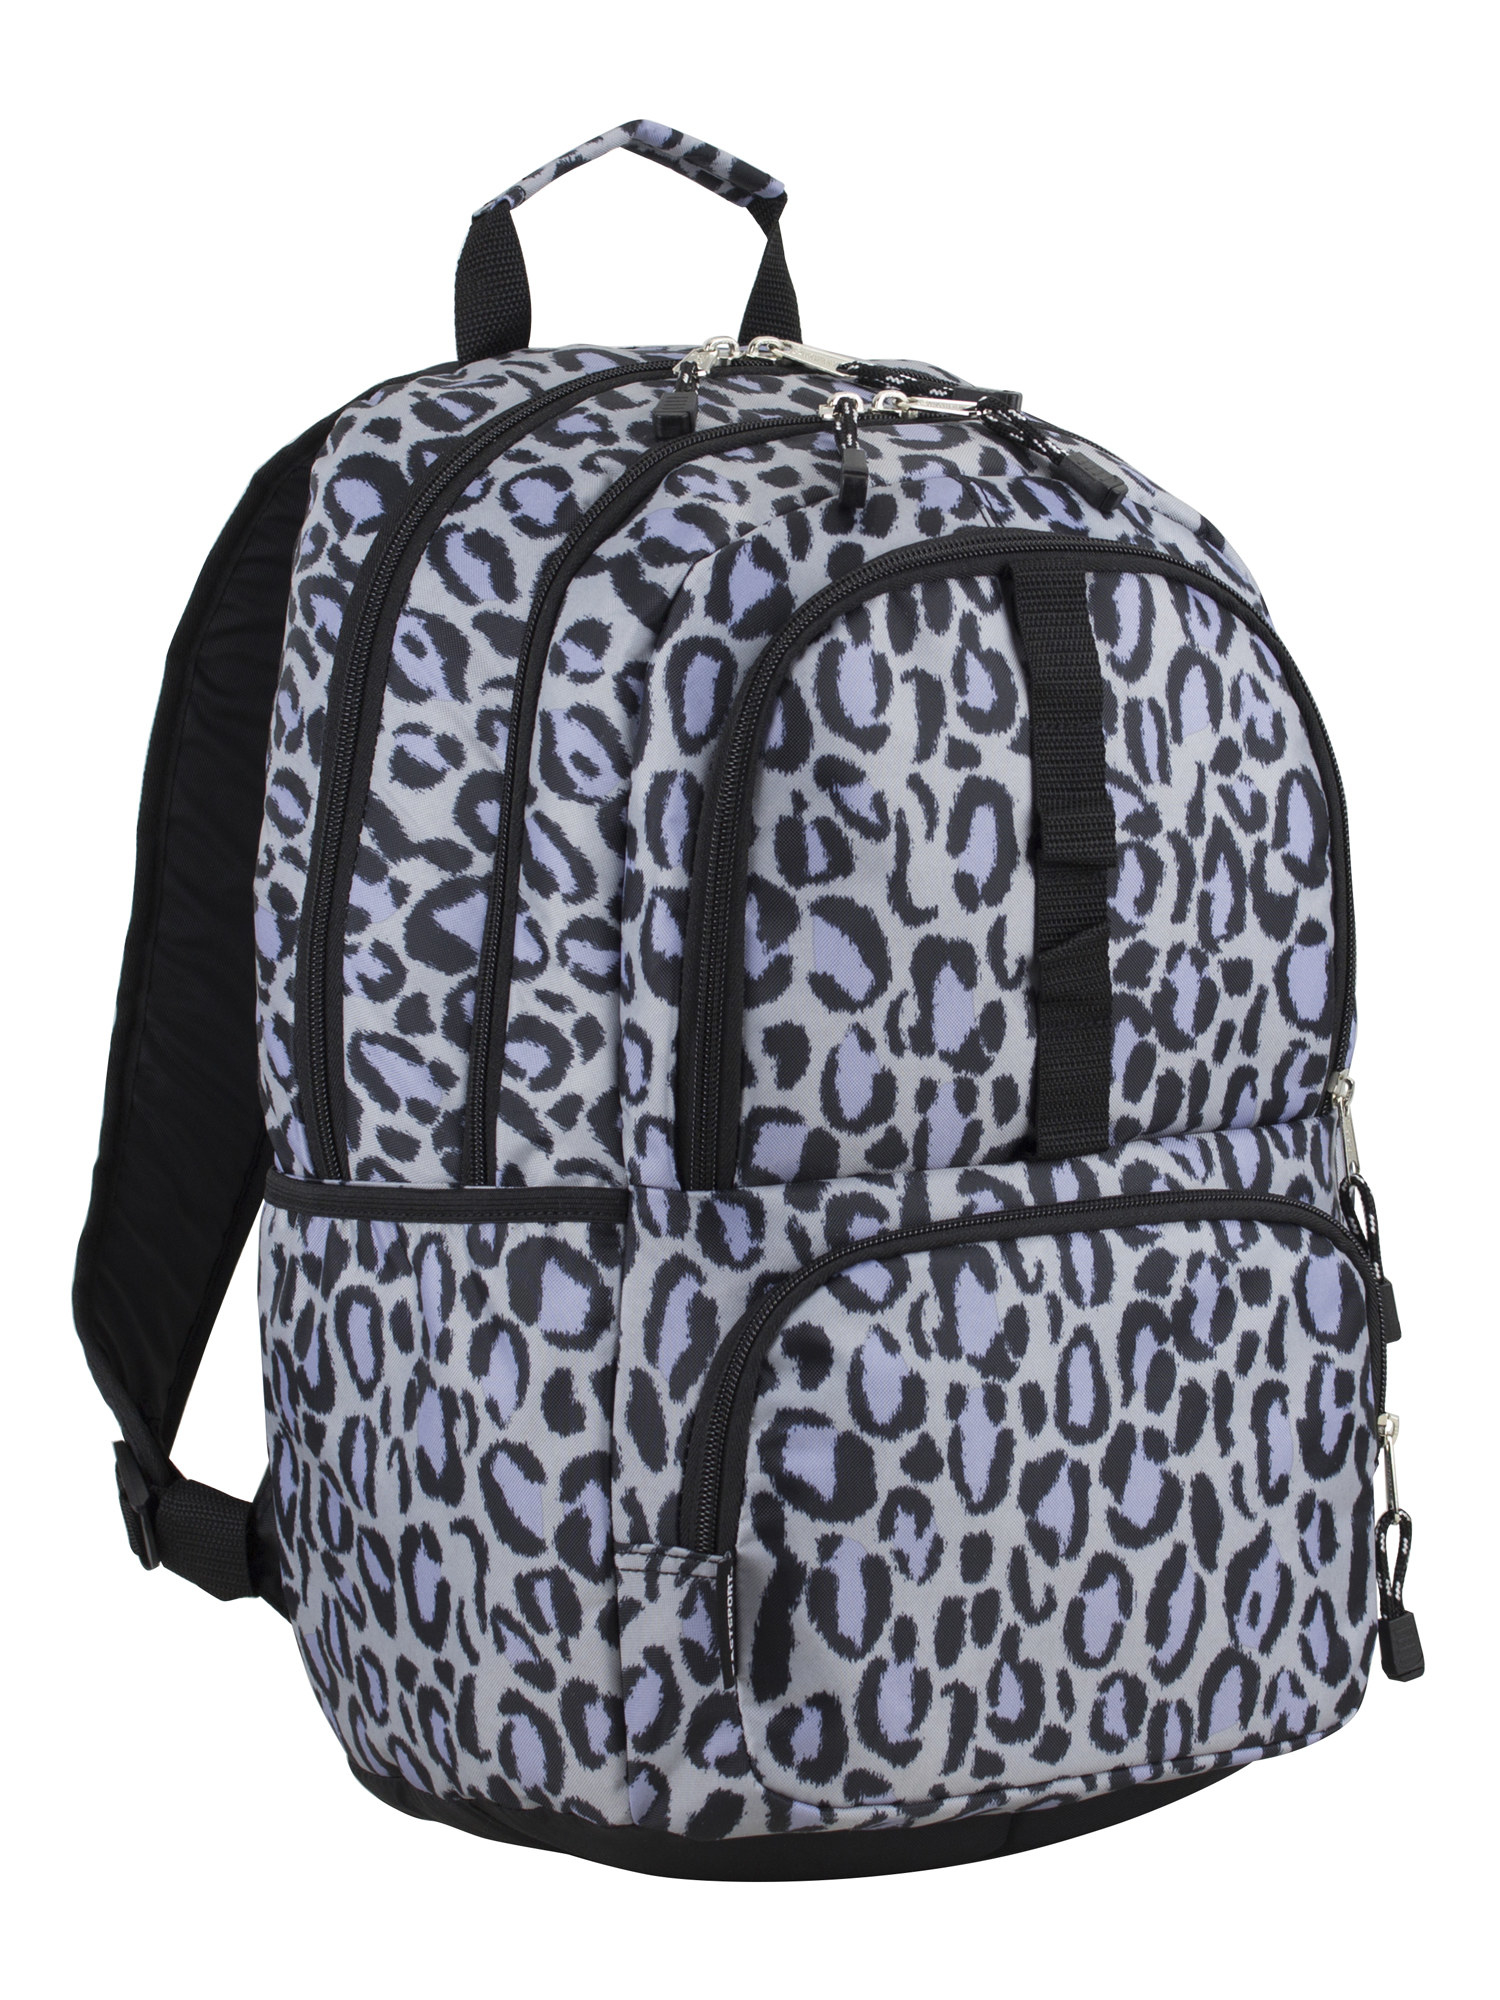 The grey leopard print backpack